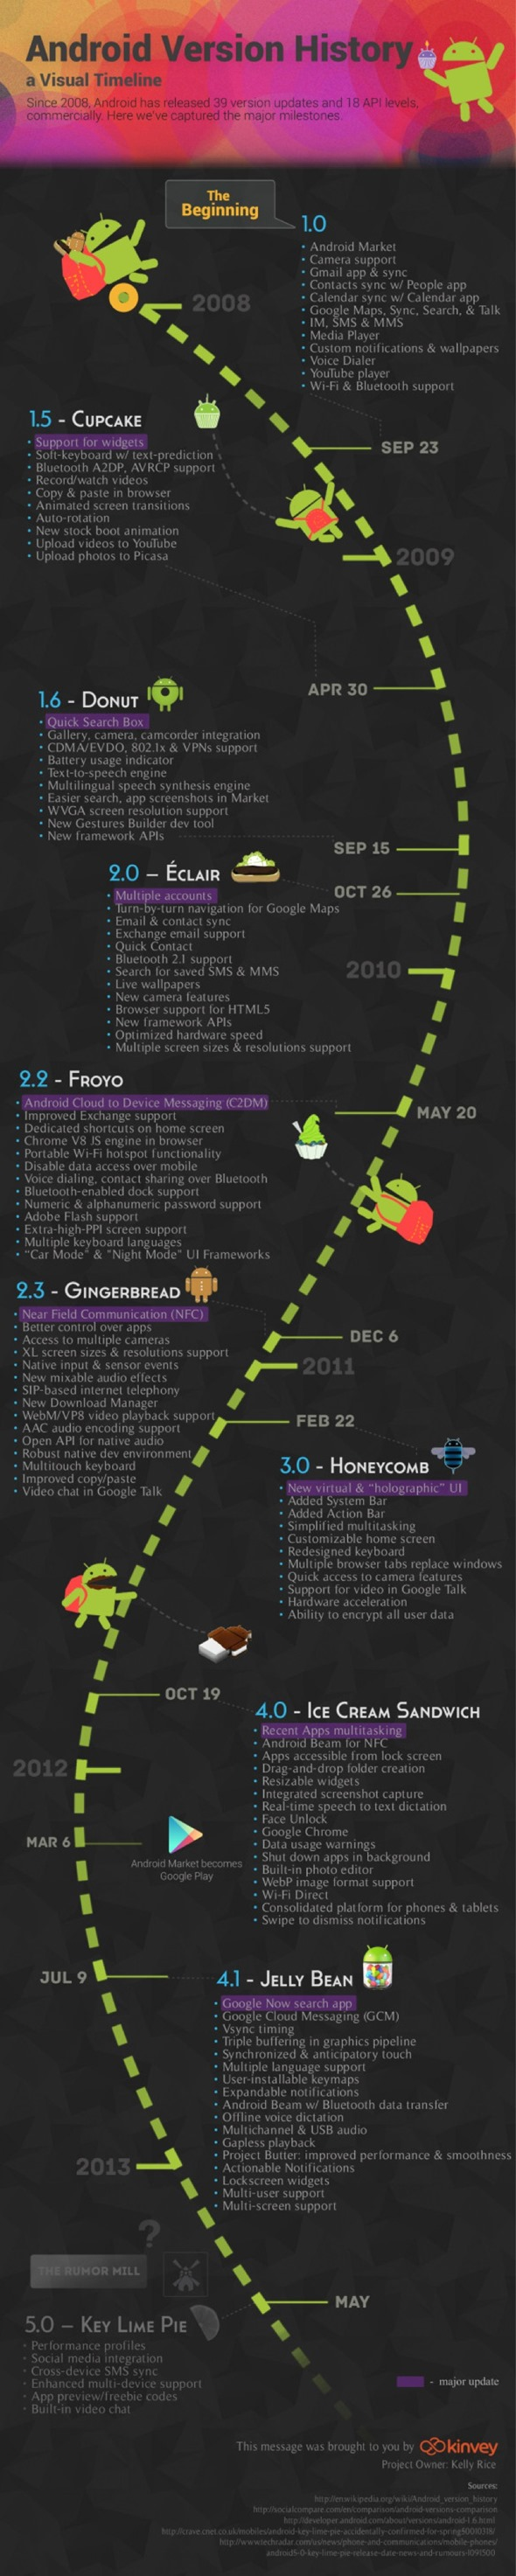 android_history_kinvey_infographic (1)